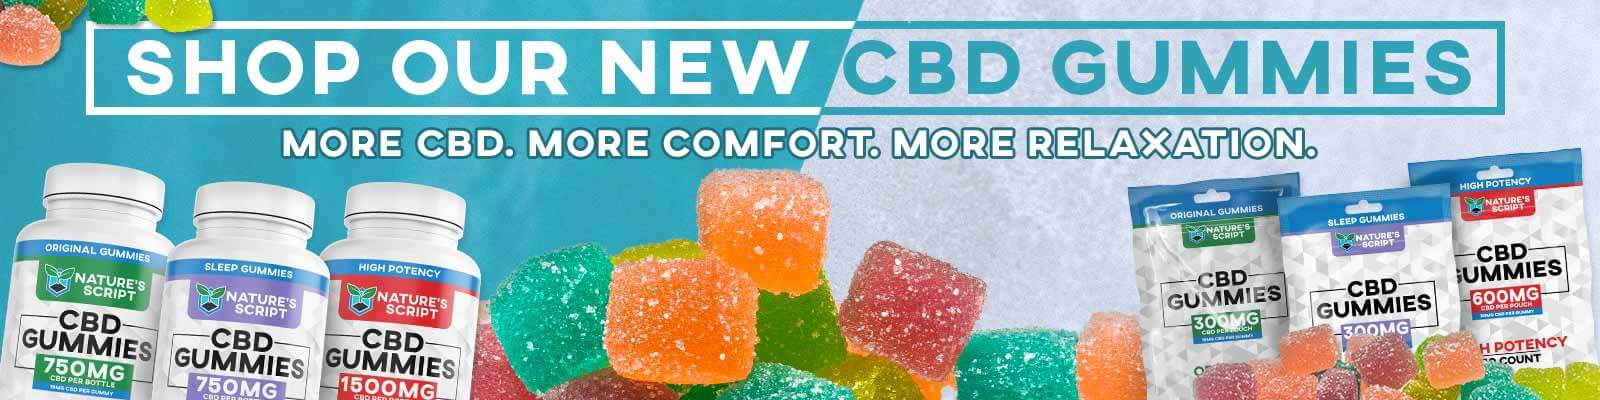 New CBD Gummies Homepage Banner